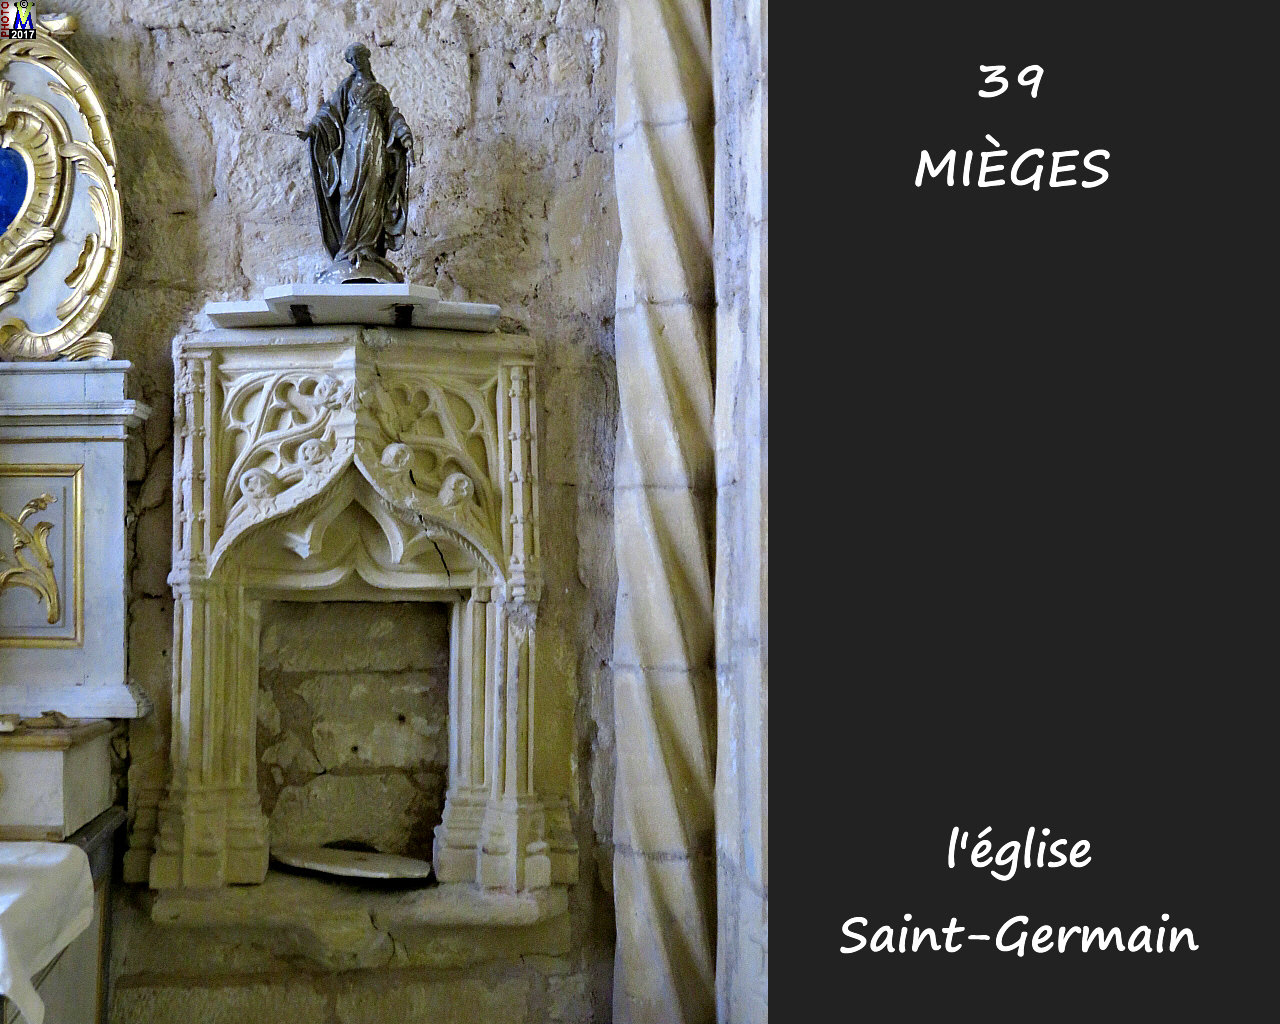 39MIEGES_eglise_276.jpg